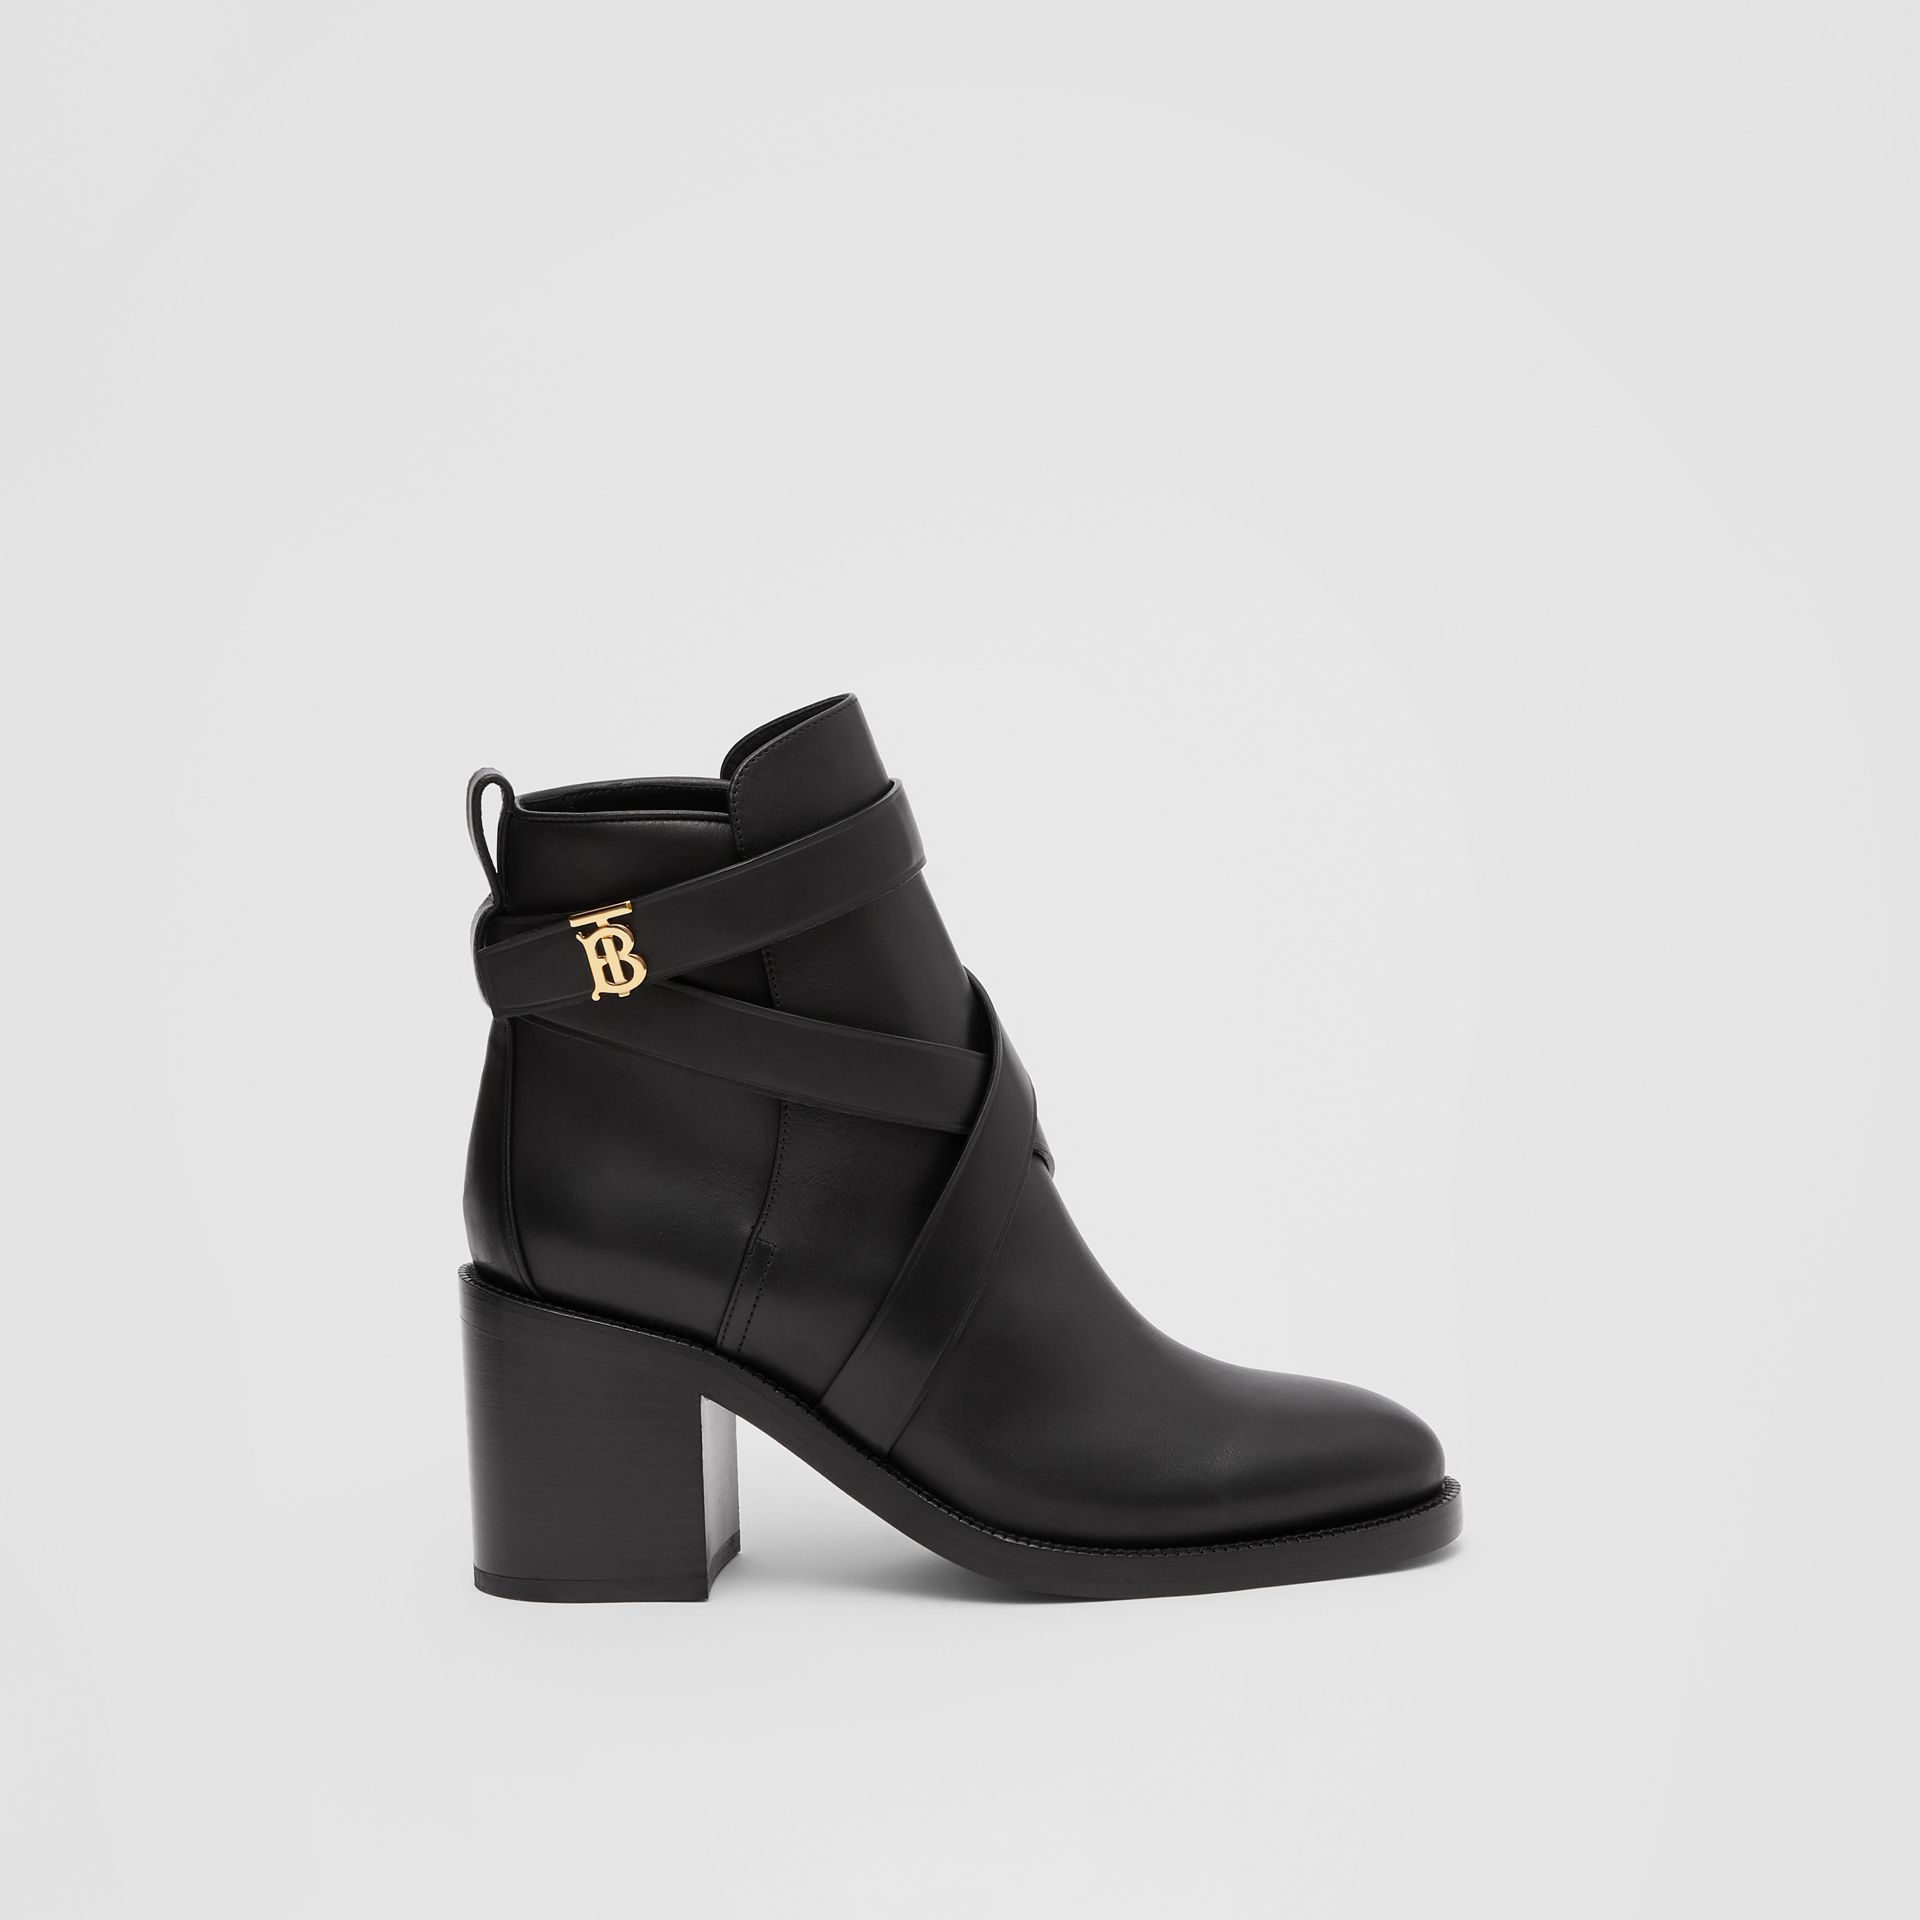 Monogram Motif Leather Ankle Boots in Black - Women | Burberry United Kingdom - gallery image 5